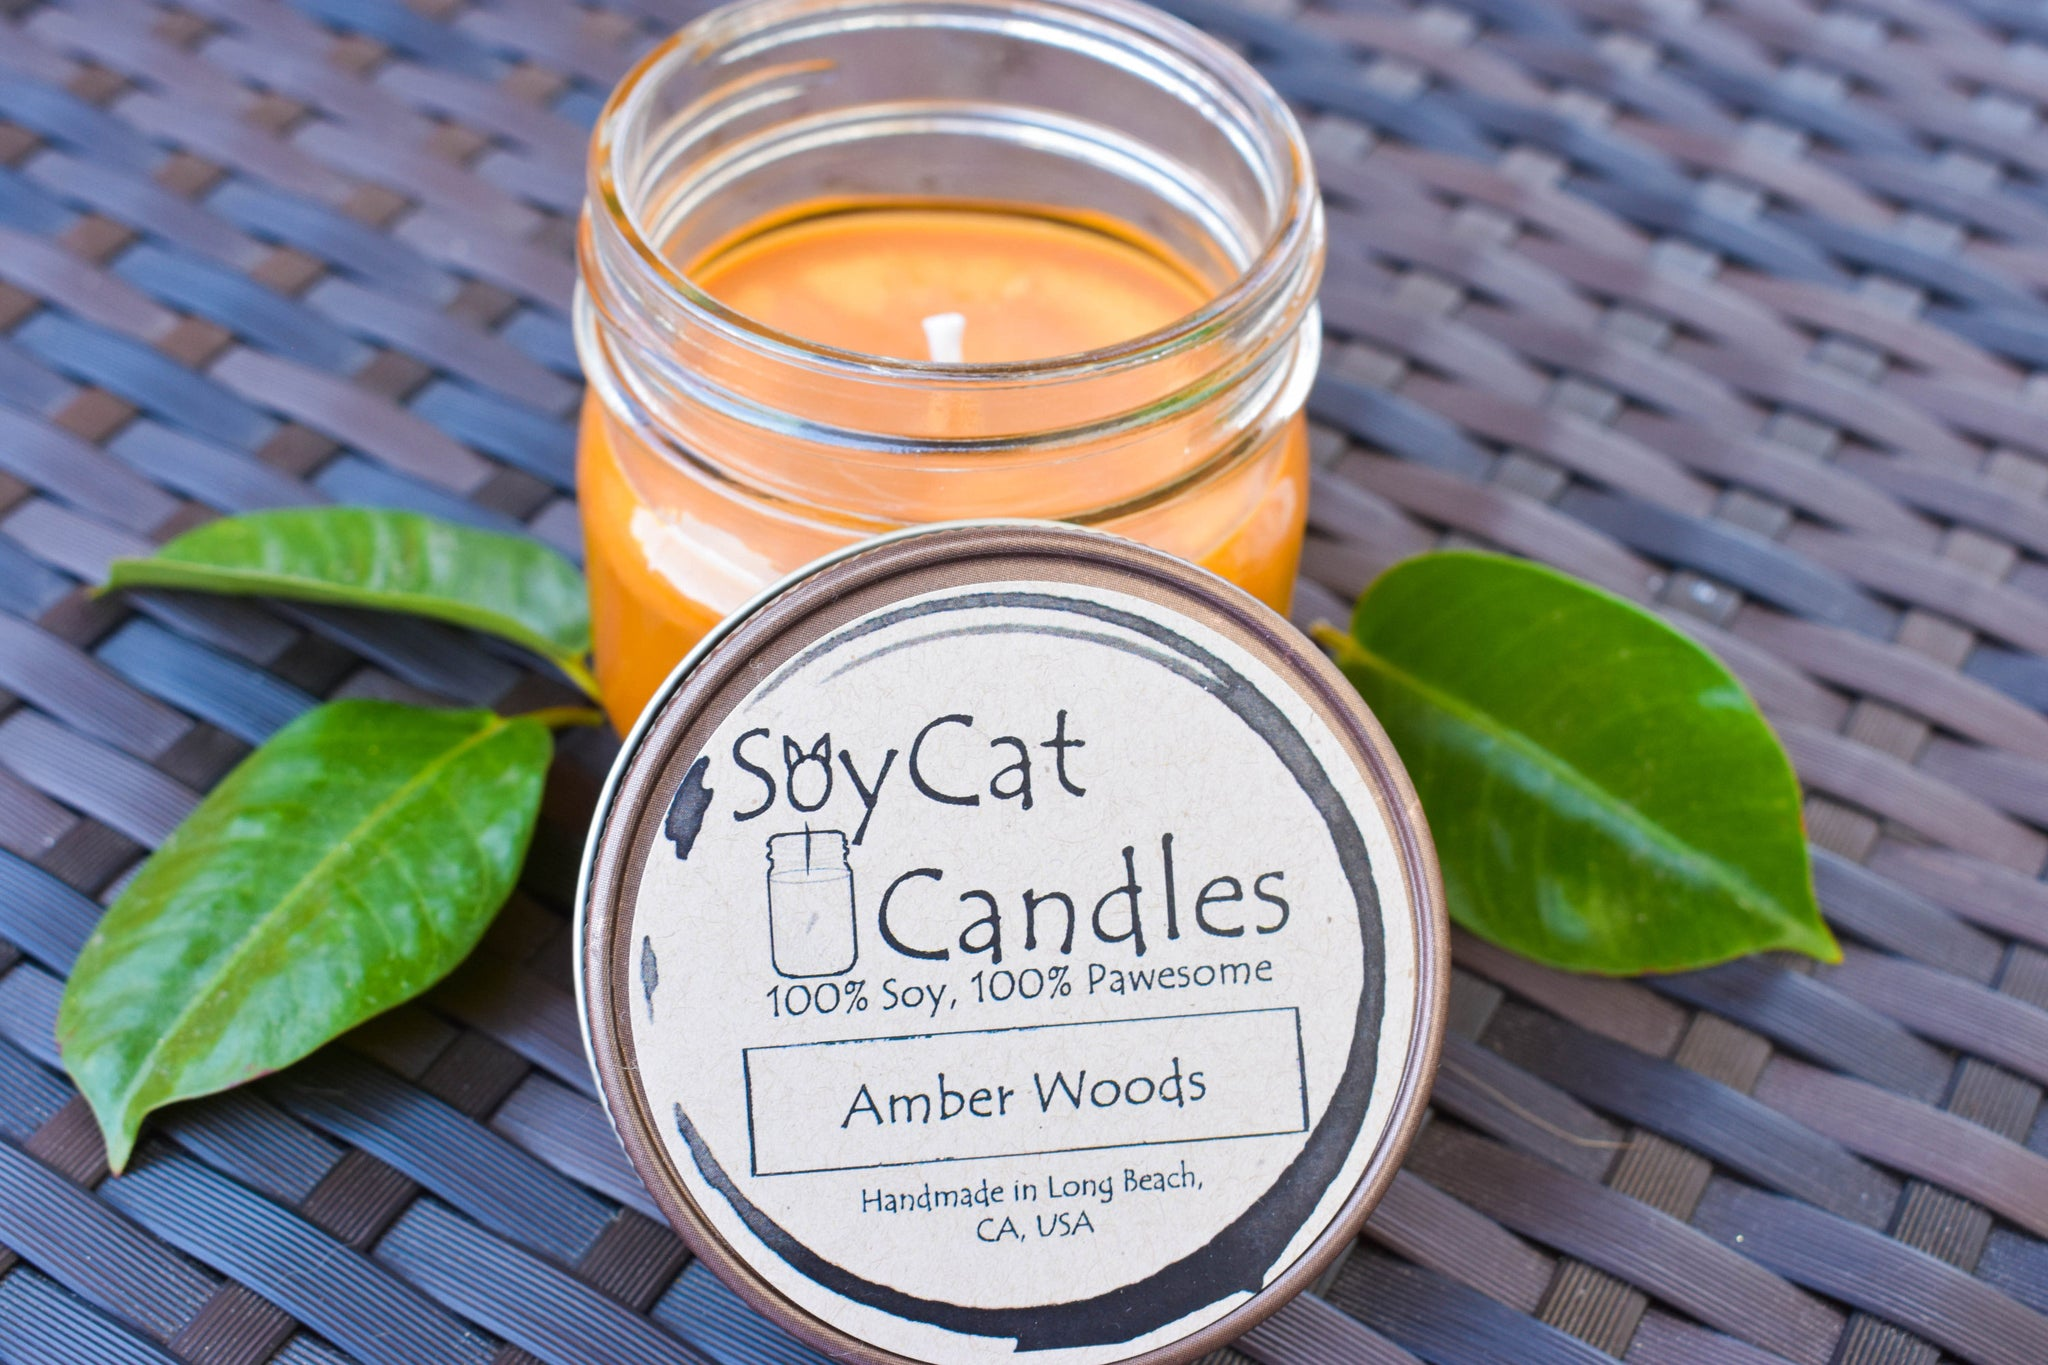 Amber Woods Kitten Size Candle (4oz)